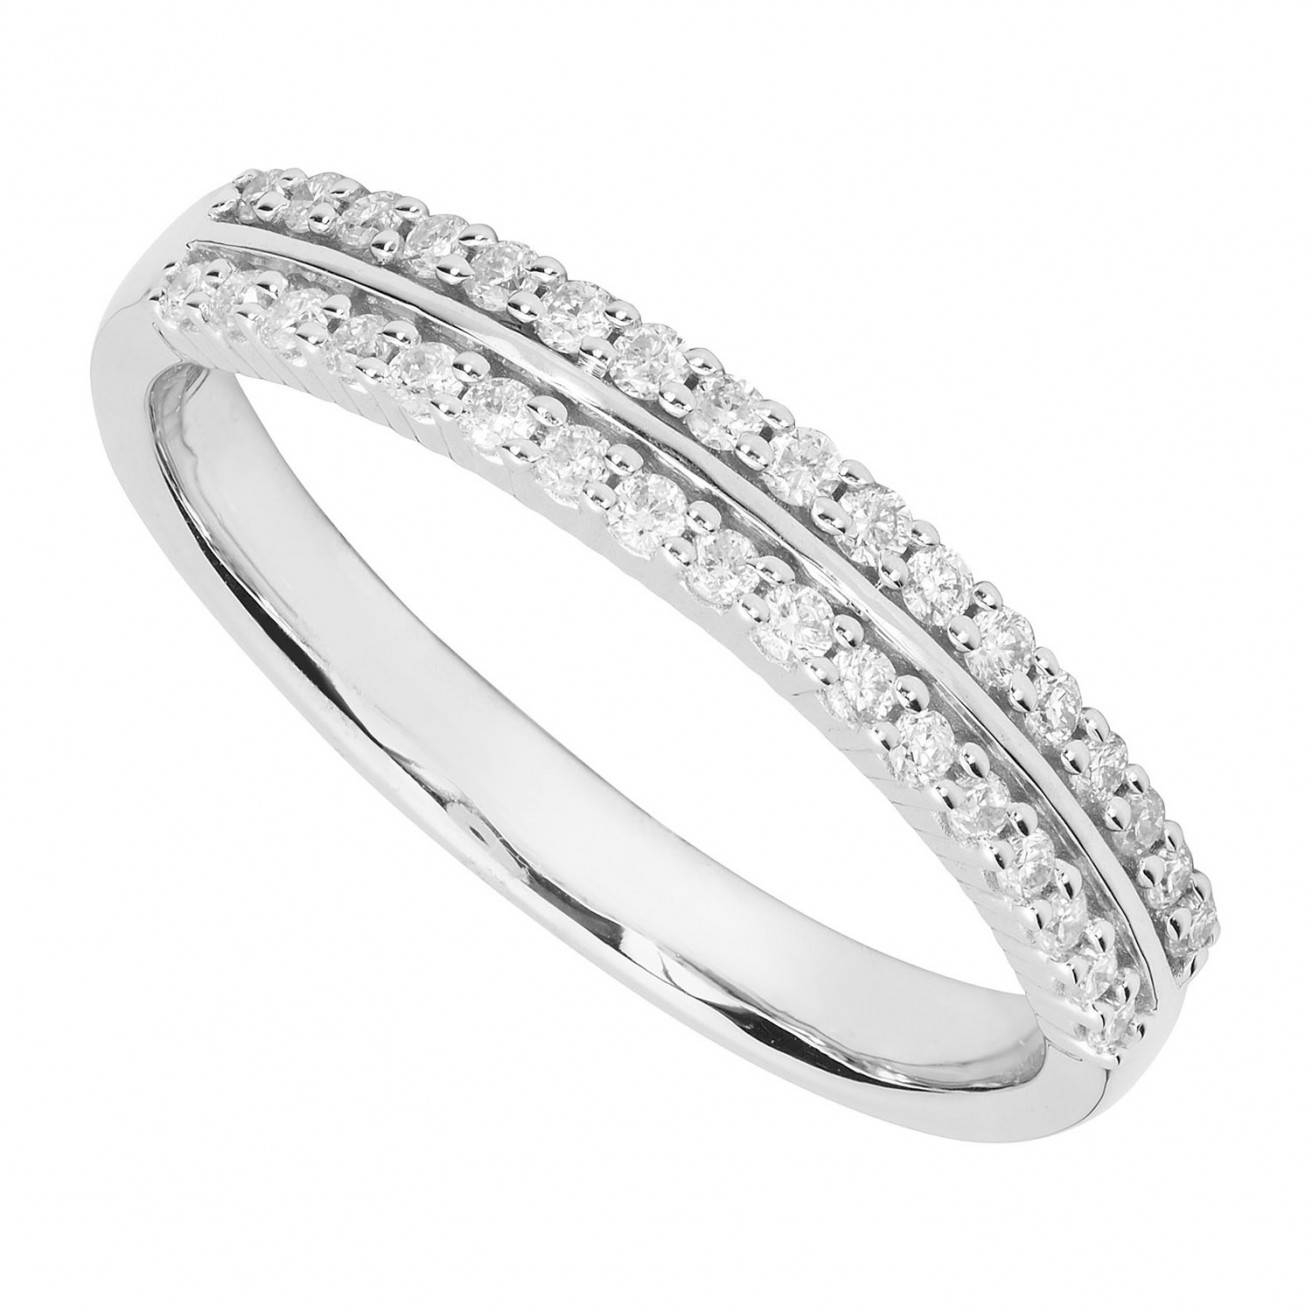 Platinum 5mm Classic Flat Wedding Ring With Regard To Platinum And Diamond Wedding Rings (View 11 of 15)